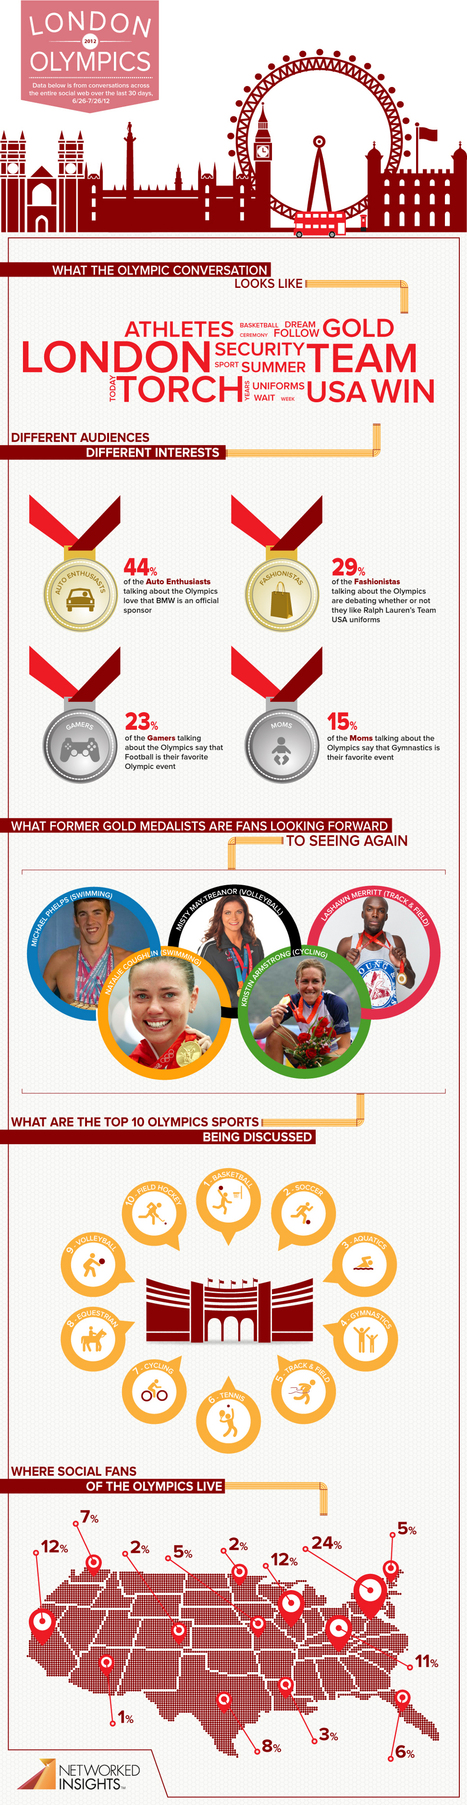 Which 10 Sports Are Getting The Most Social Buzz At The London Olympics? [INFOGRAPHIC] - AllTwitter | Tracking Transmedia | Scoop.it